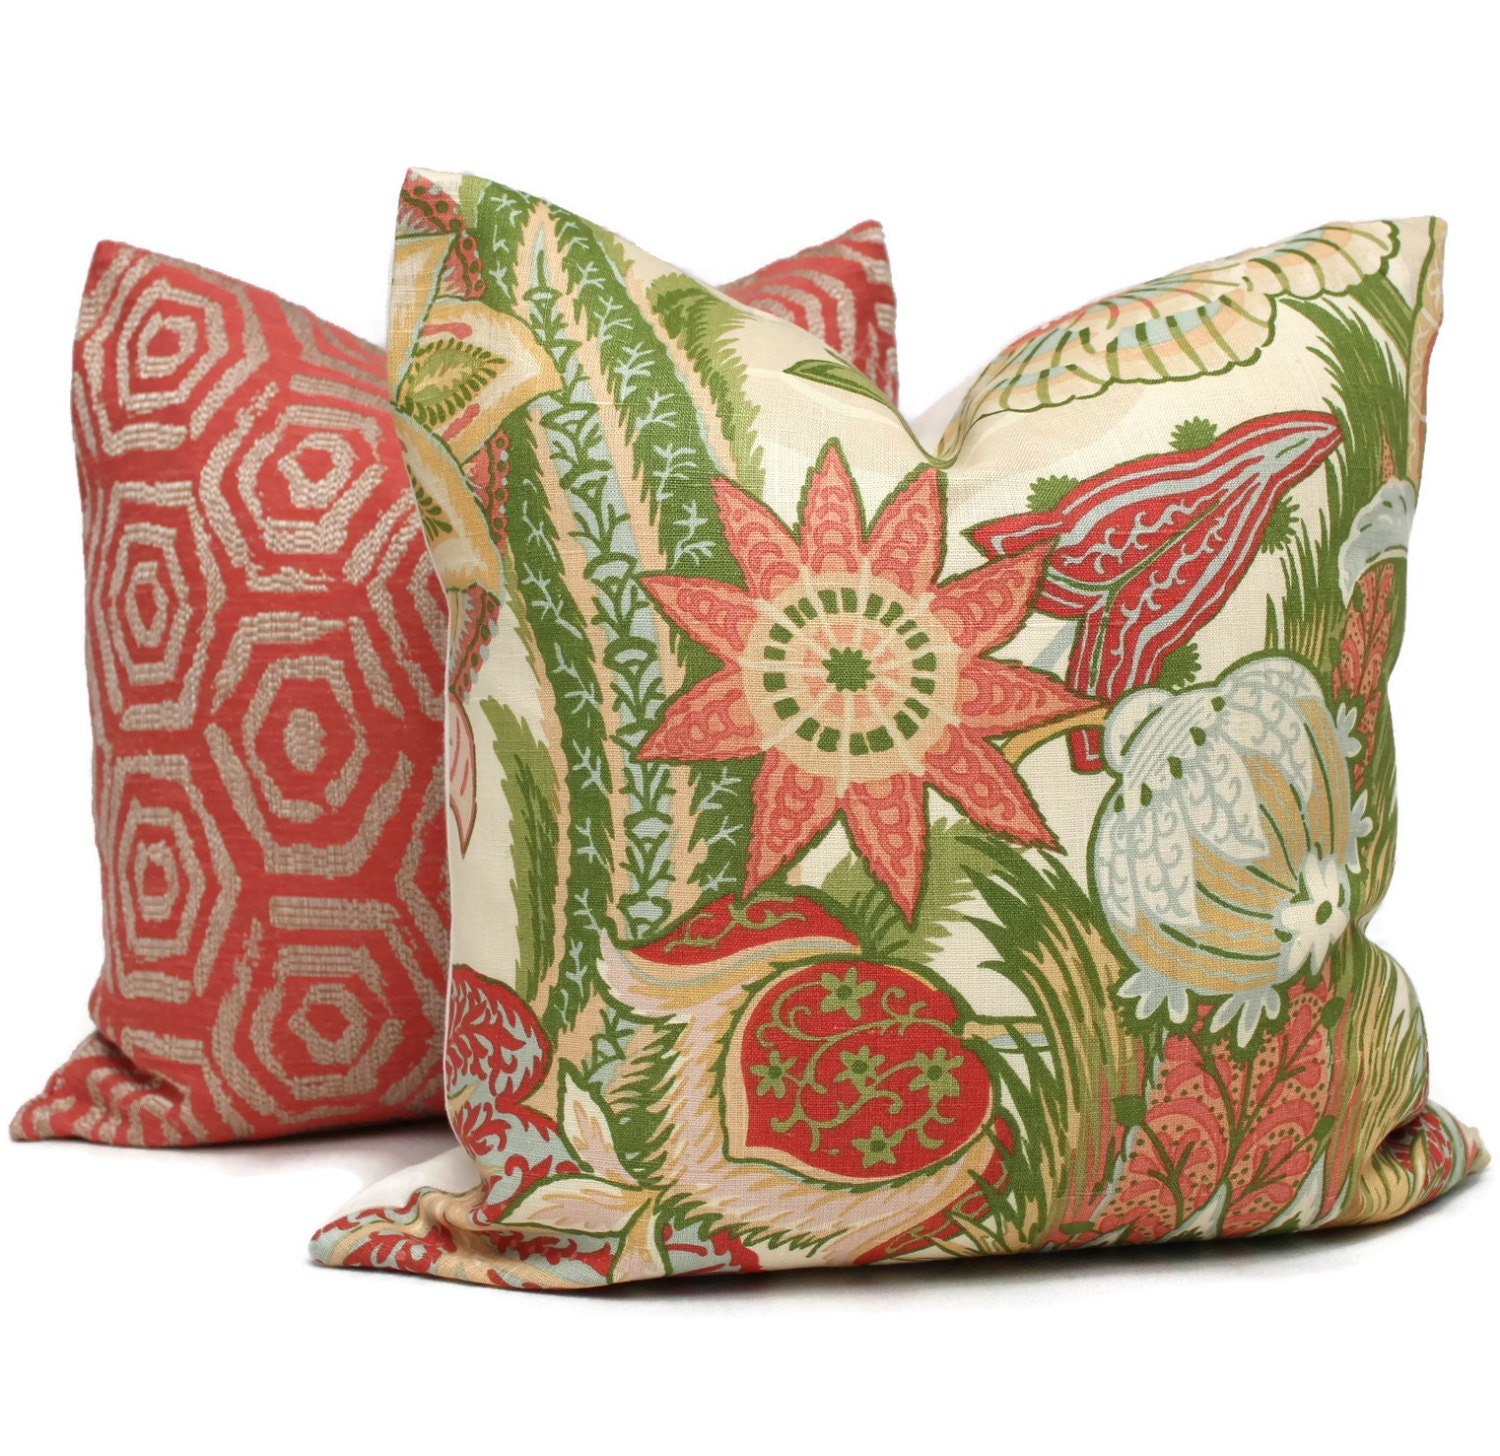 22x22 Decorative Pillows : Zanzibar Blush Decorative Pillow Cover 18x18 20x20 22x22